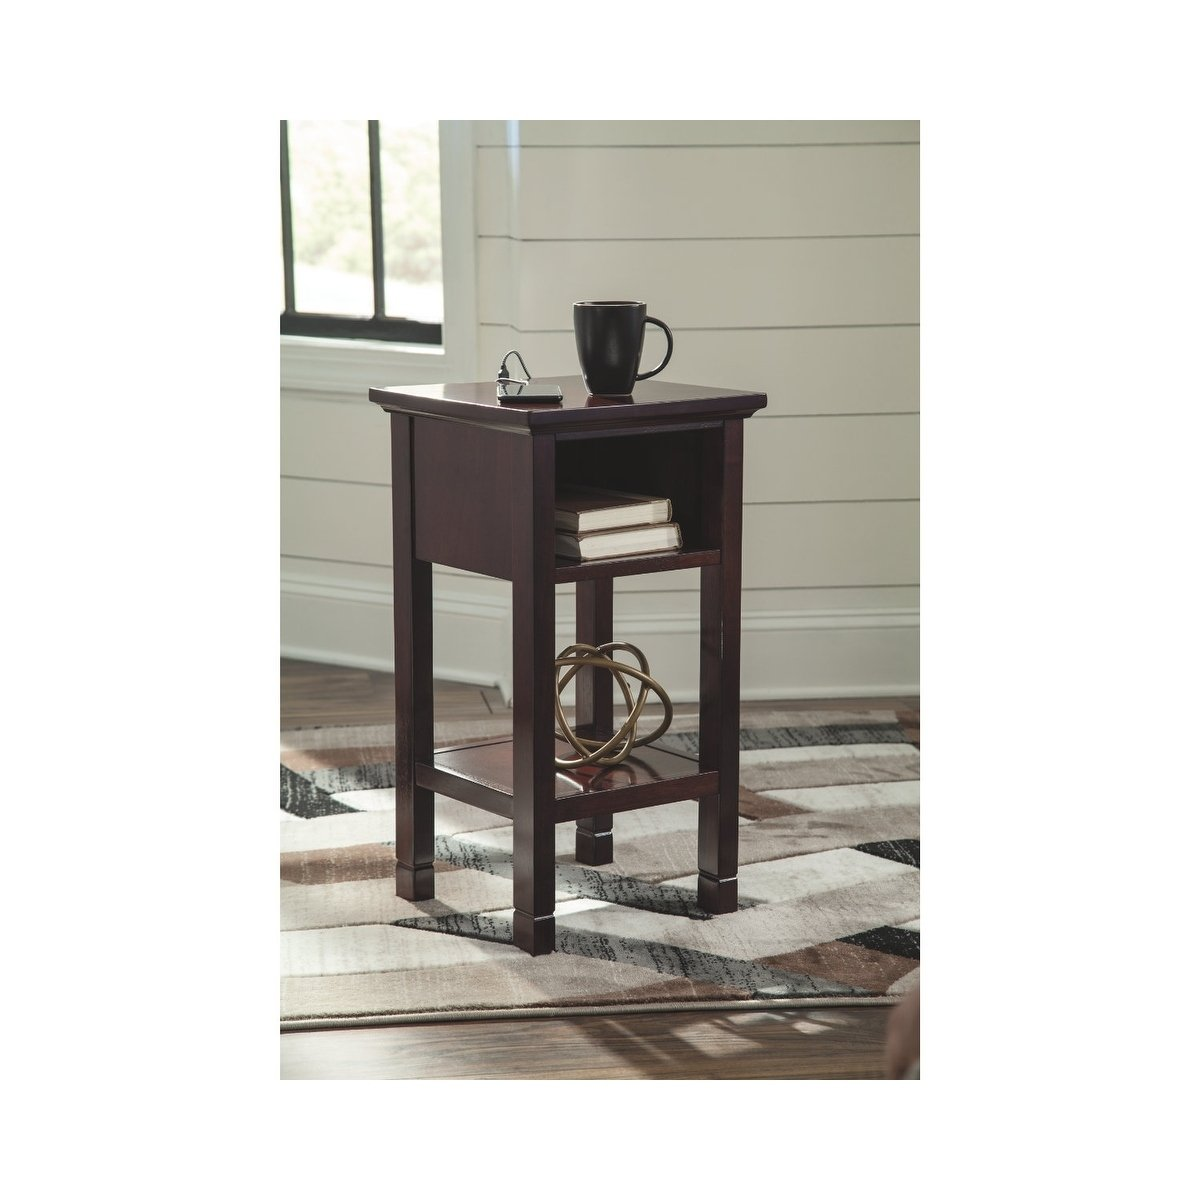 signature design ashley marnville reddish brown accent table clearance tables free shipping today height and chairs outdoor dining sets black marble coffee set unusual home decor